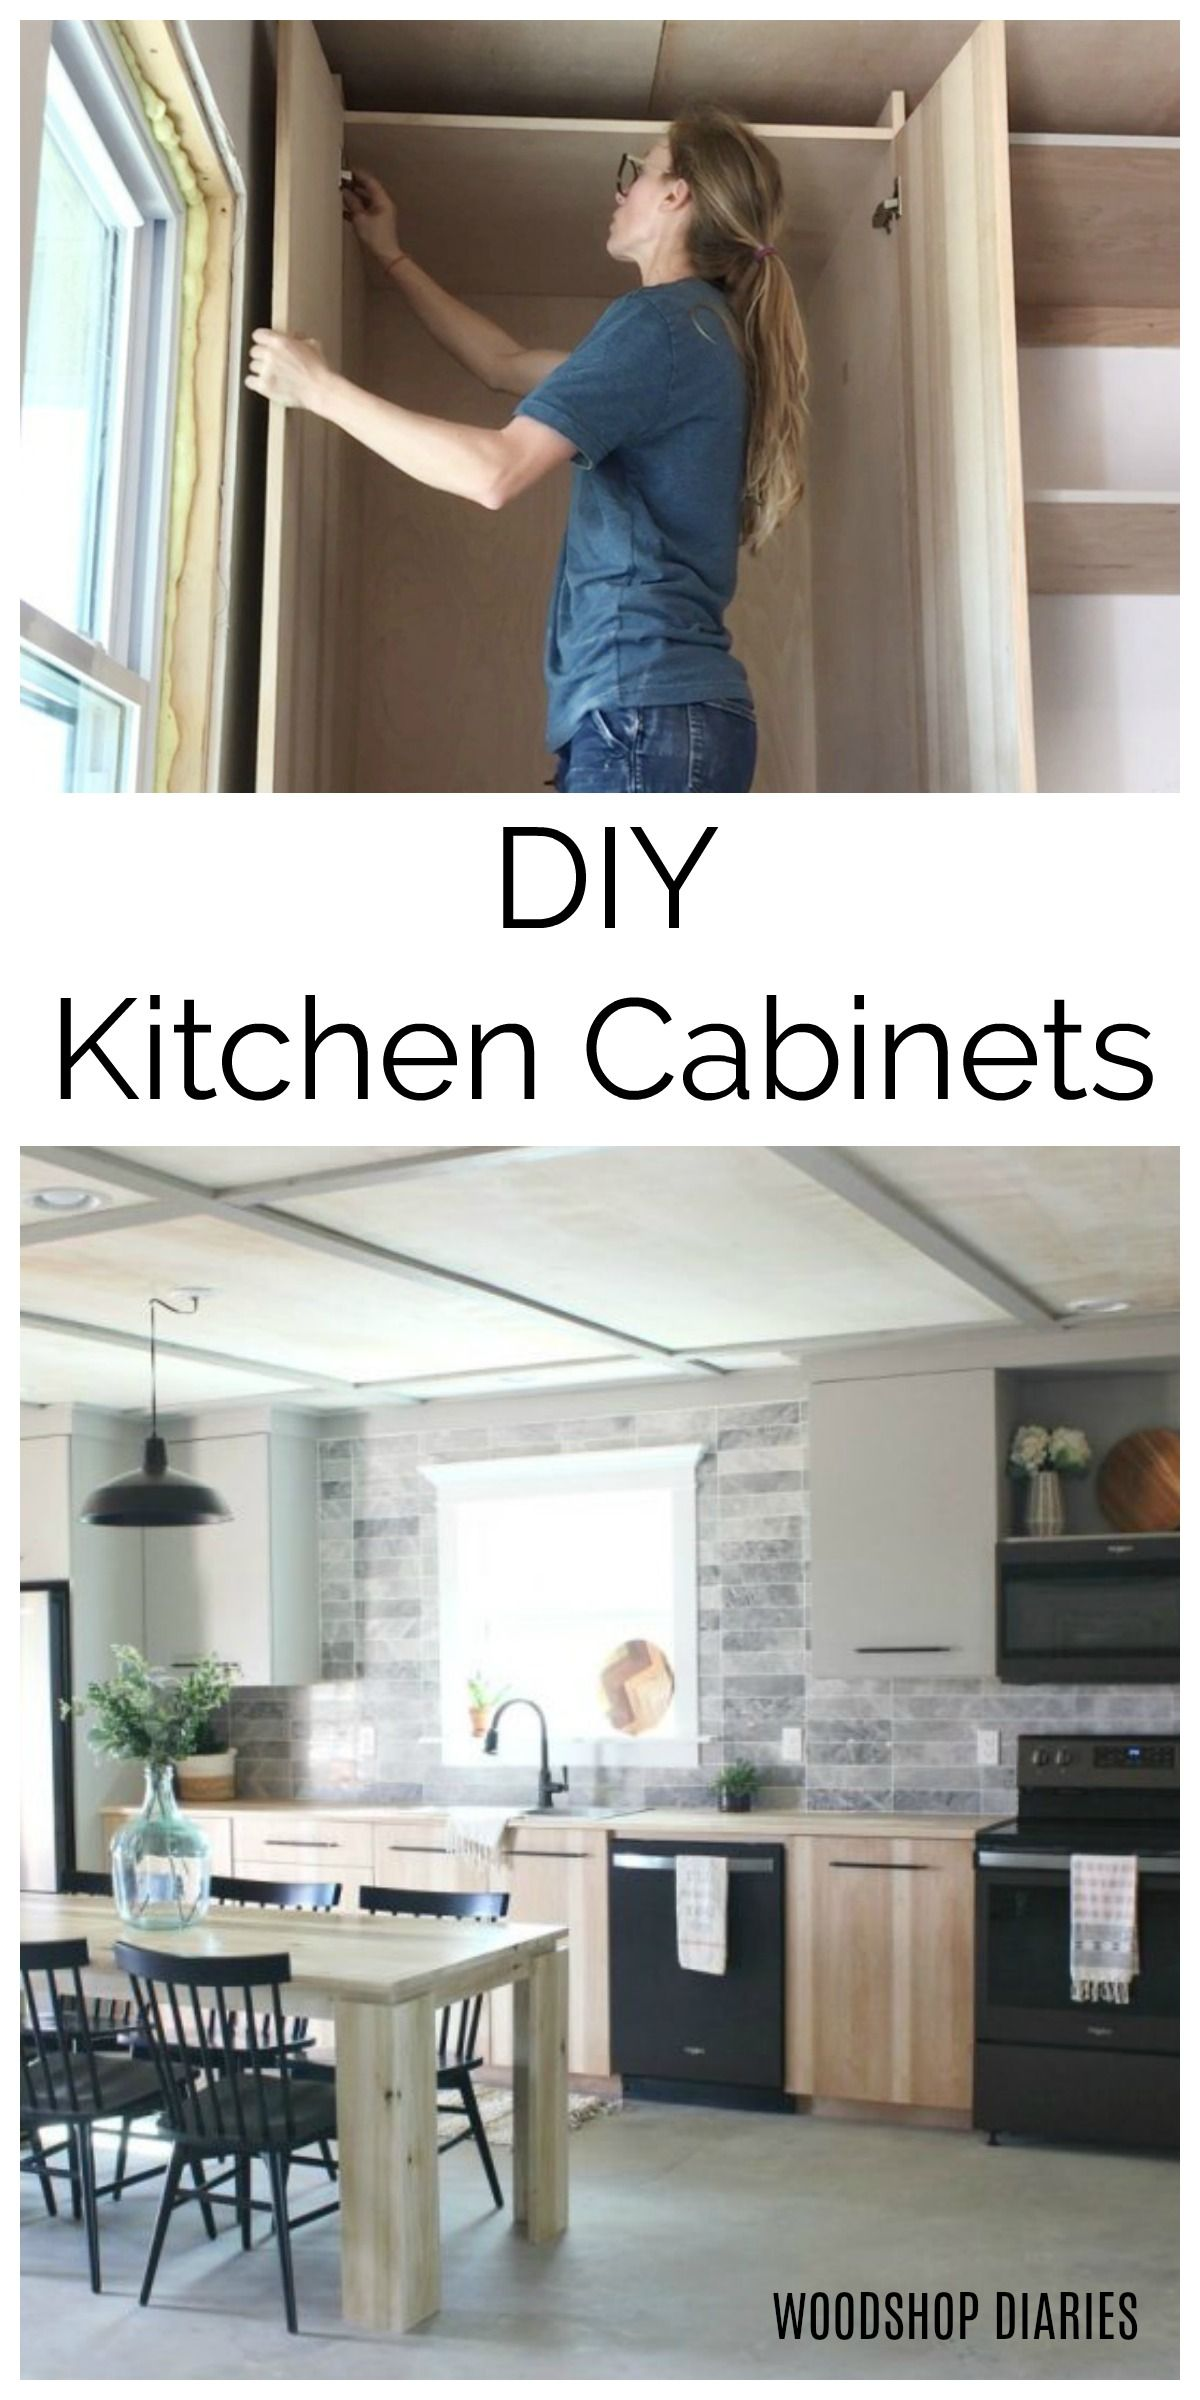 Diy Kitchen Cabinets Made From Only Plywood In 2020 Building Kitchen Cabinets Simple Kitchen Cabinets Diy Kitchen Cabinets